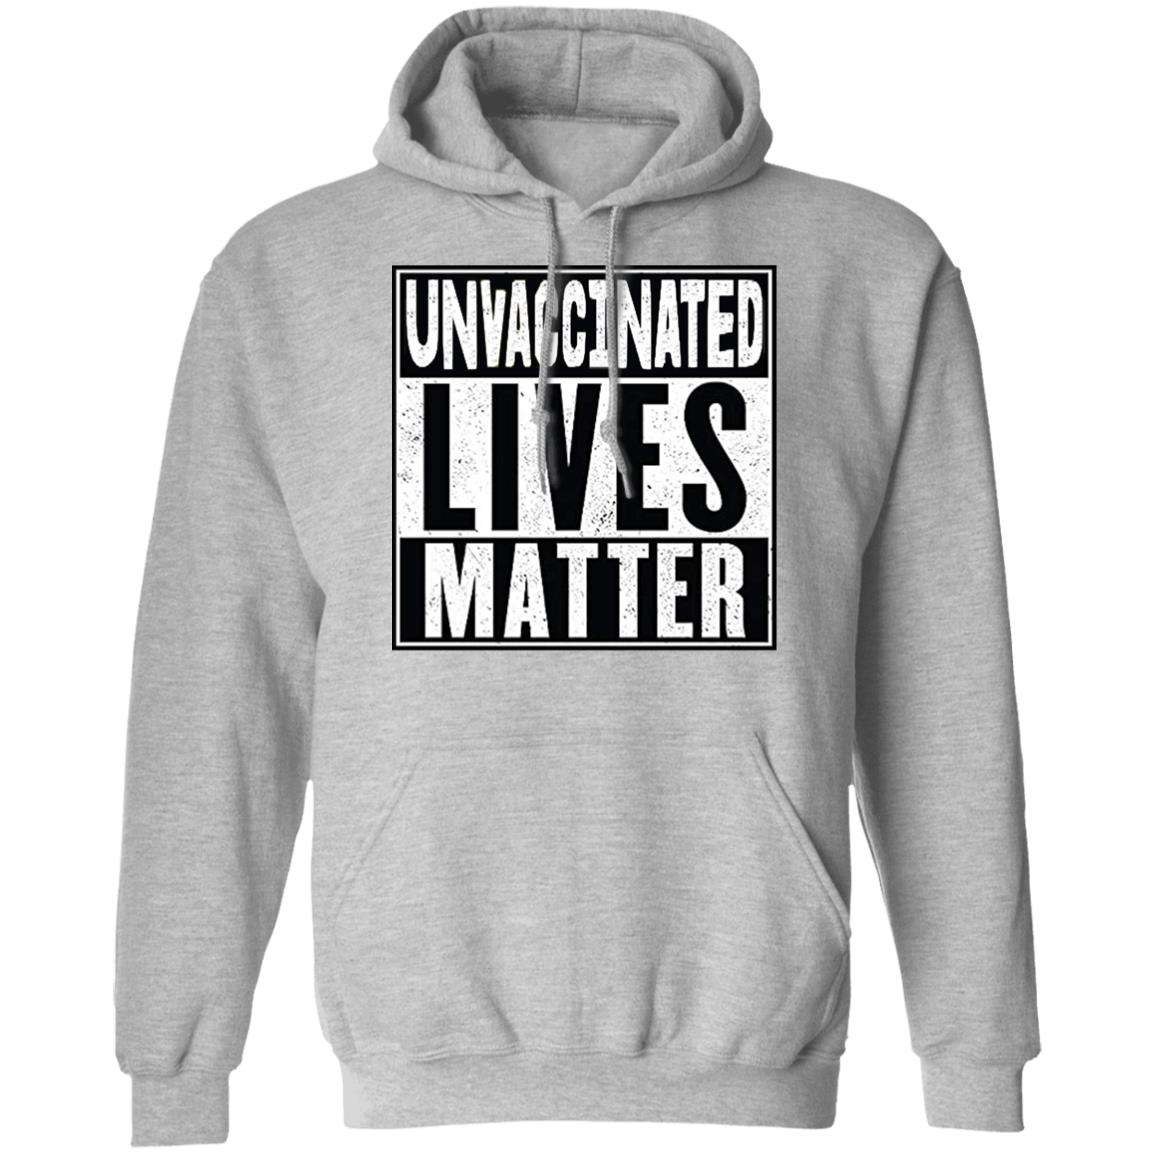 Unvaccinated Lives Matter Pullover Hoodie (11 Variants)